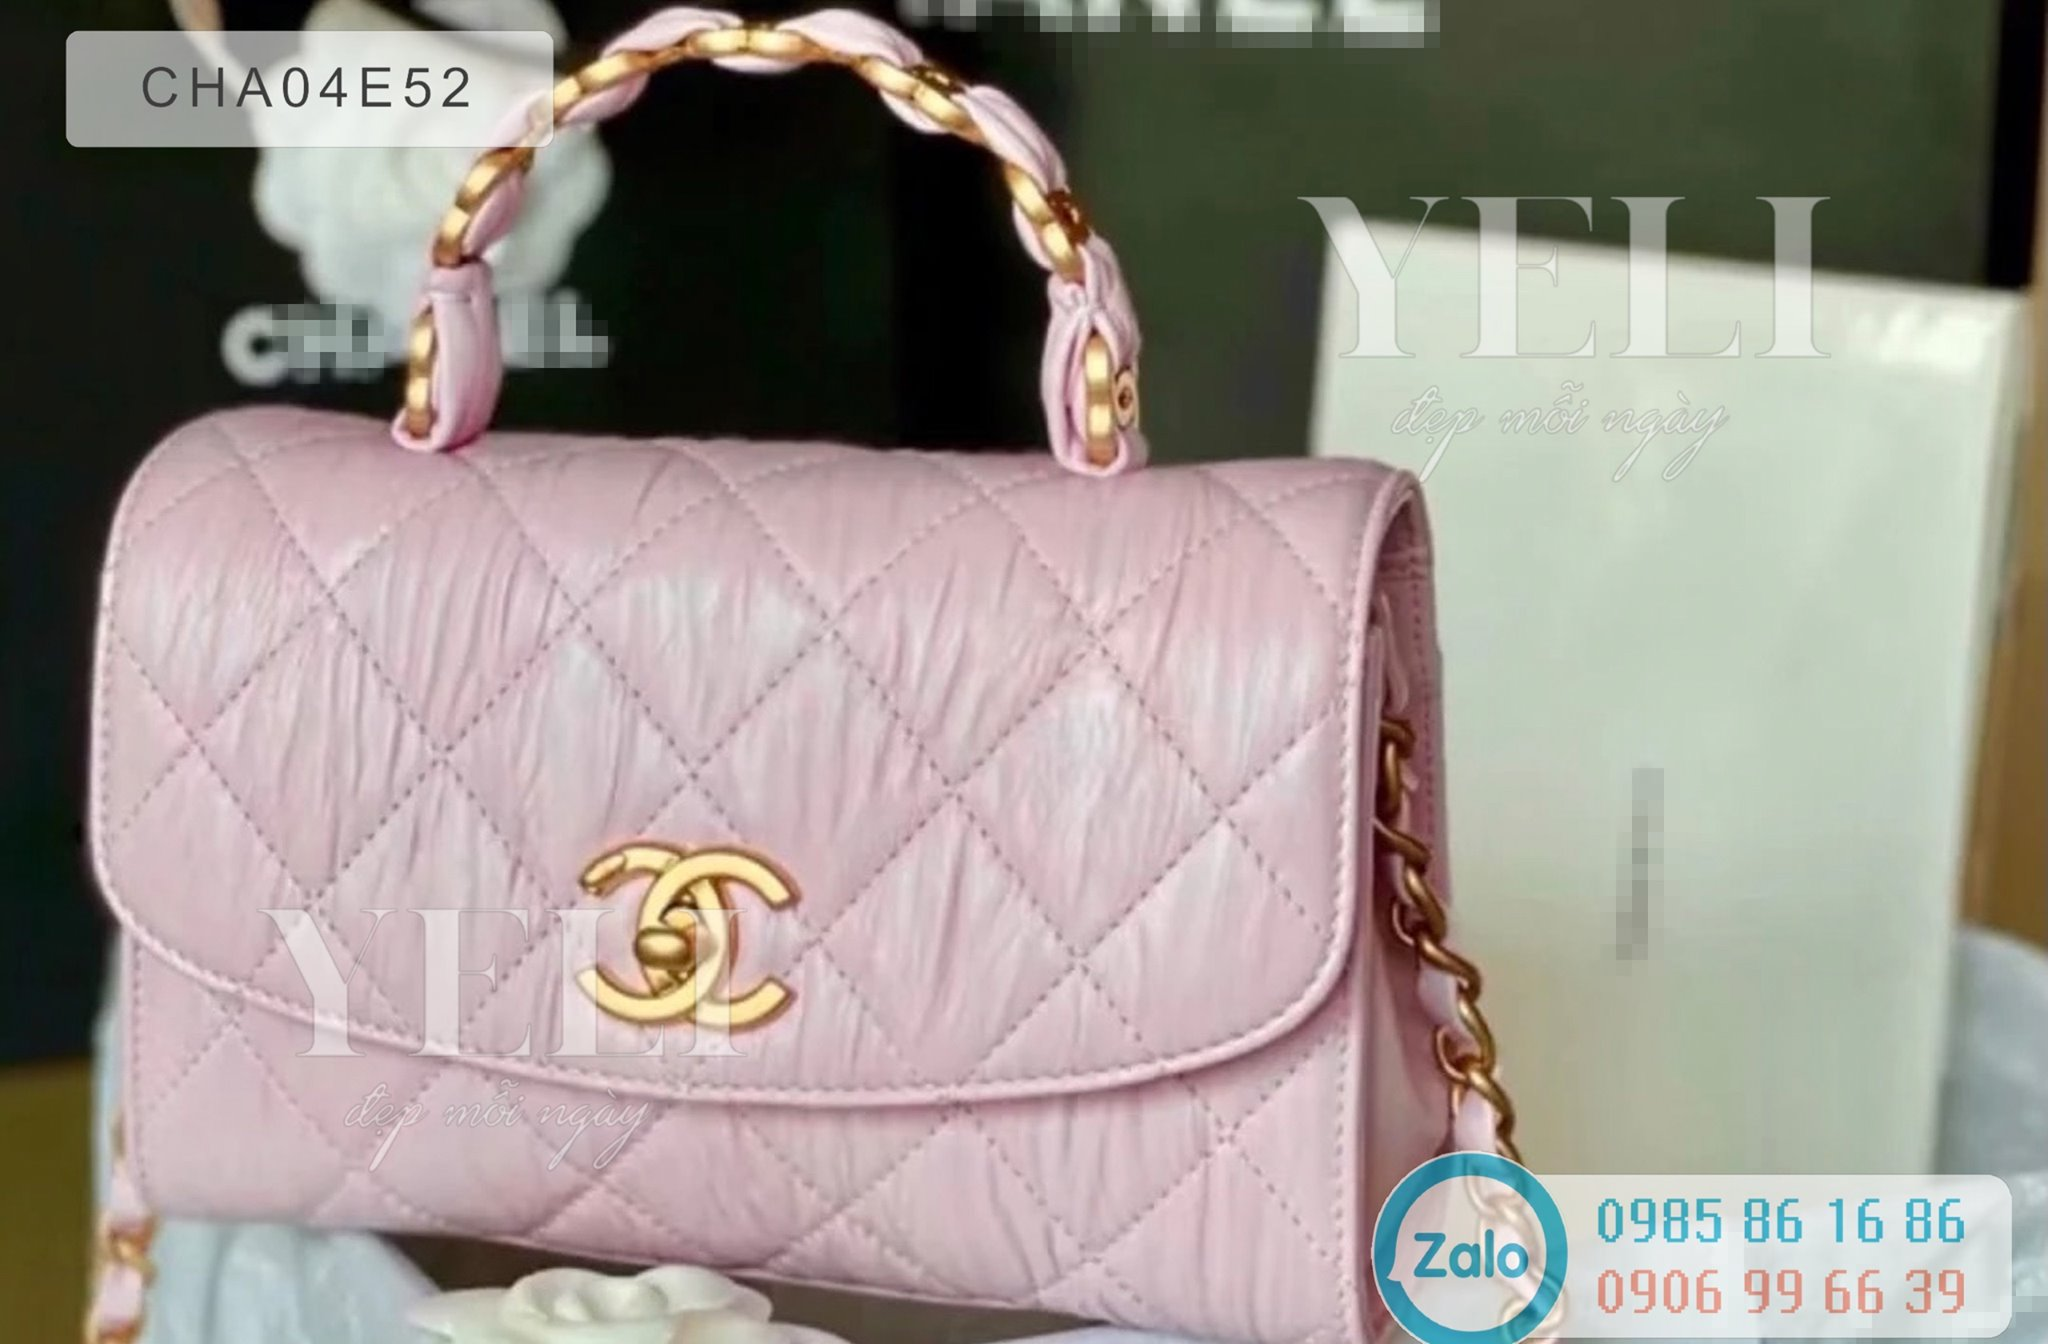 [ORDER] Chanel mini flap bag with top handle